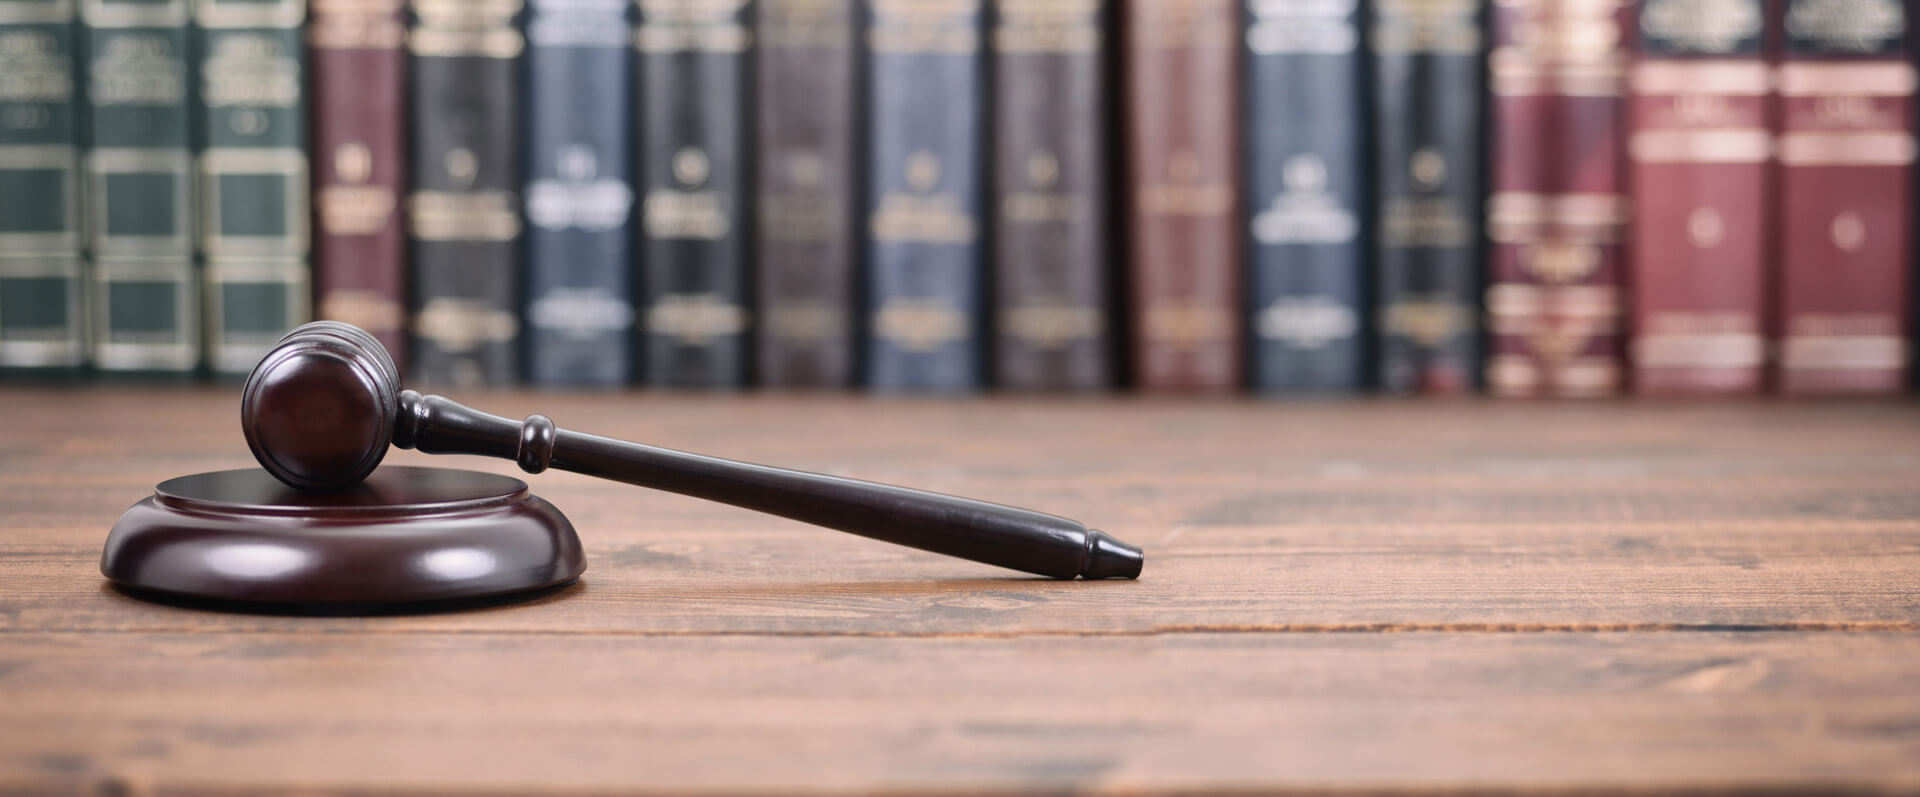 Judge Gavel on a wooden background, Law library concept.